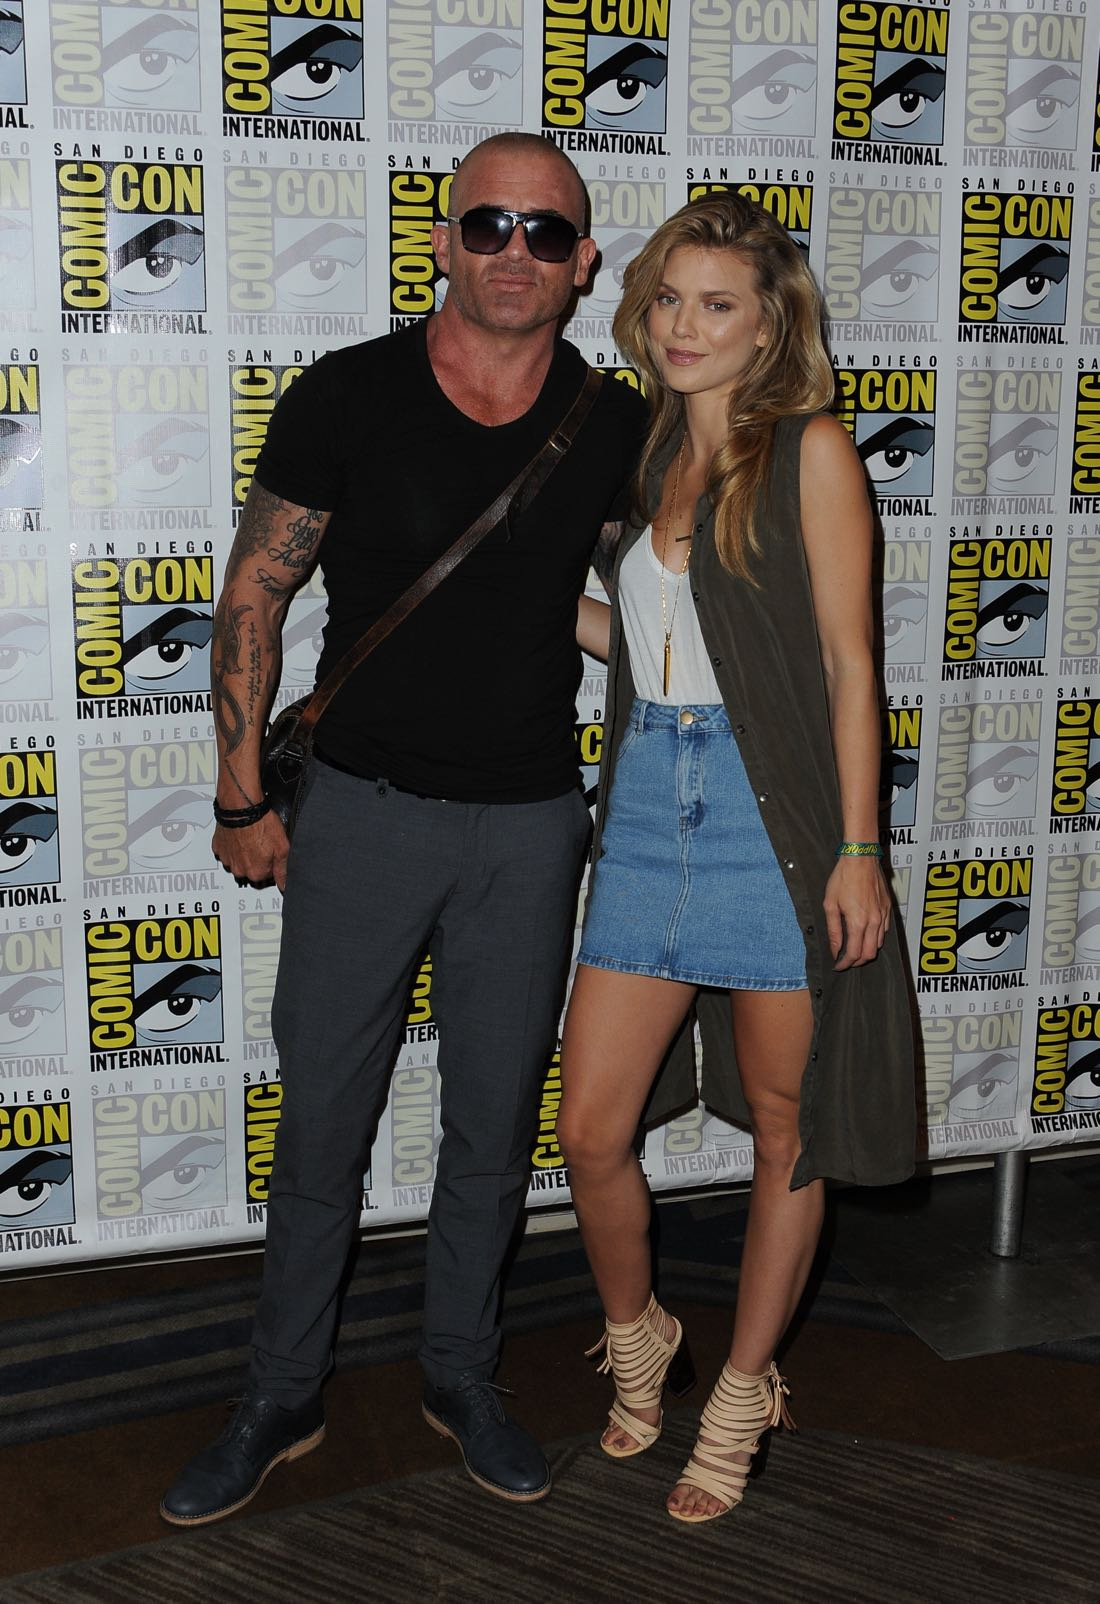 FOX FANFARE AT SAN DIEGO COMIC-CON © 2016: PRISON BREAK cast member Domininc Pucell and AnnaLynne McCord during the PRISON BREAK press room on Sunday, July 24 at the FOX FANFARE AT SAN DIEGO COMIC-CON © 2016. CR: Scott Kirkland/FOX © 2016 FOX BROADCASTING